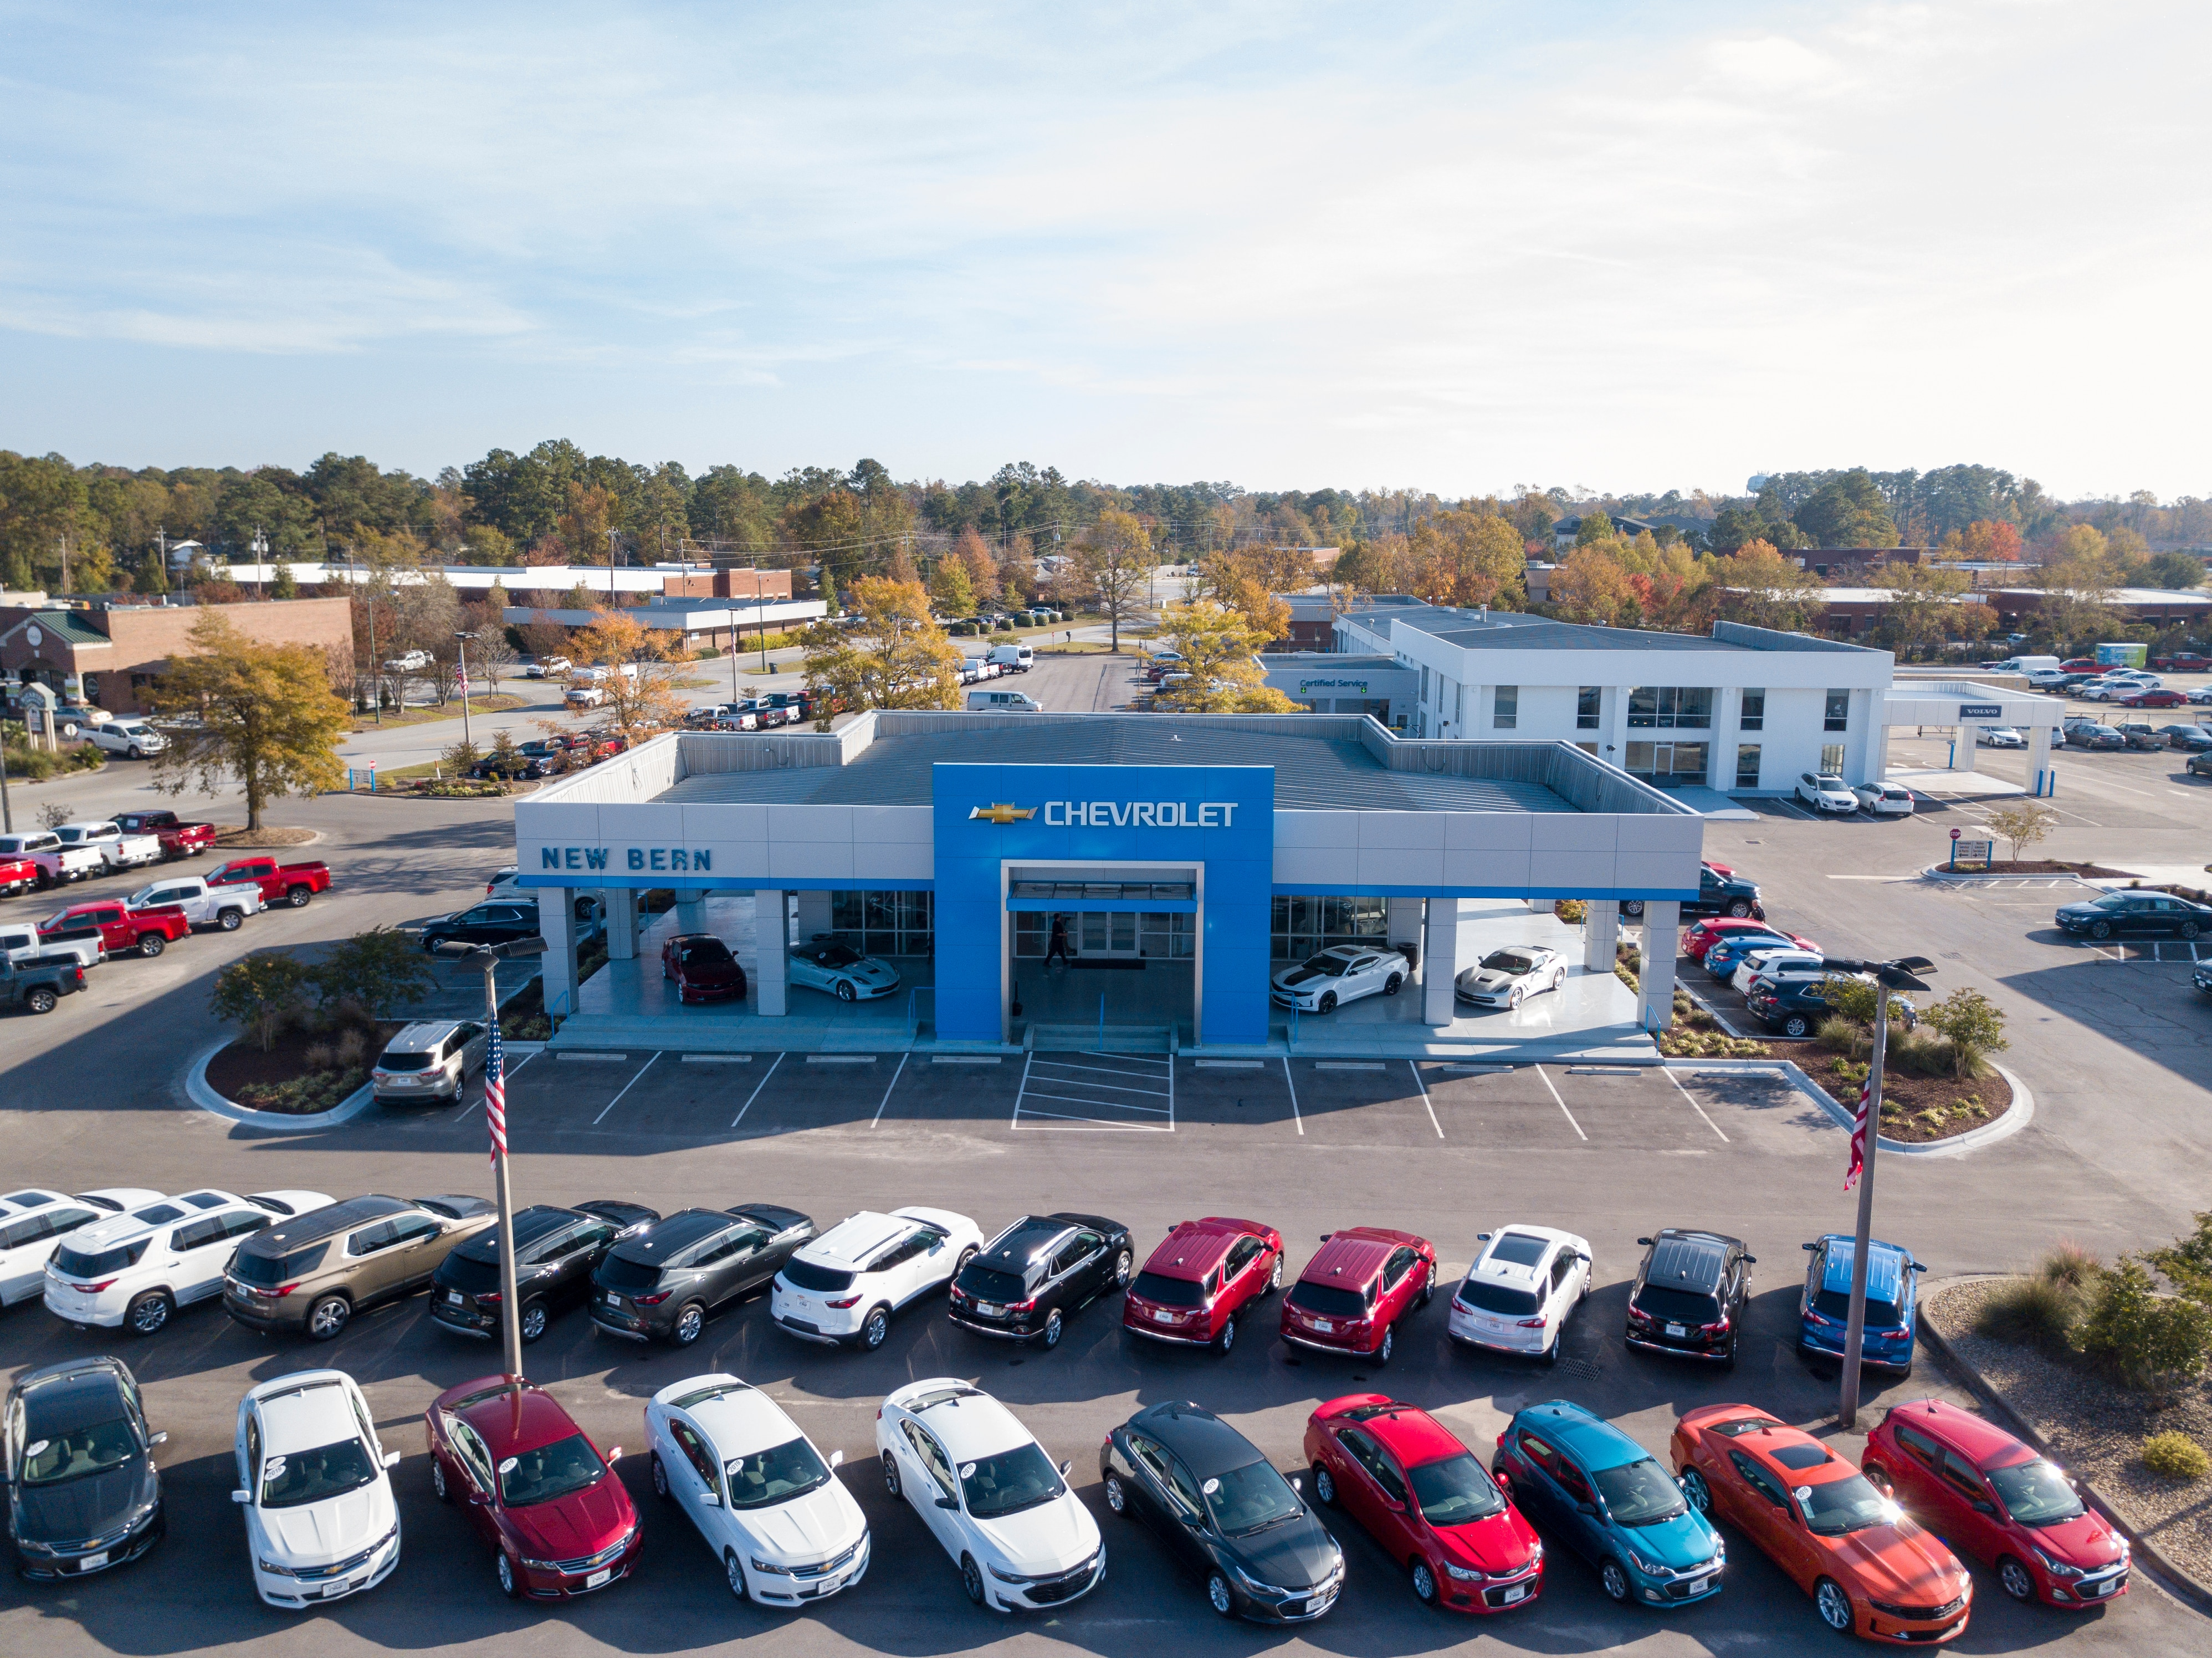 About Chevrolet of New Bern | Storefront of Chevrolet of New Bern